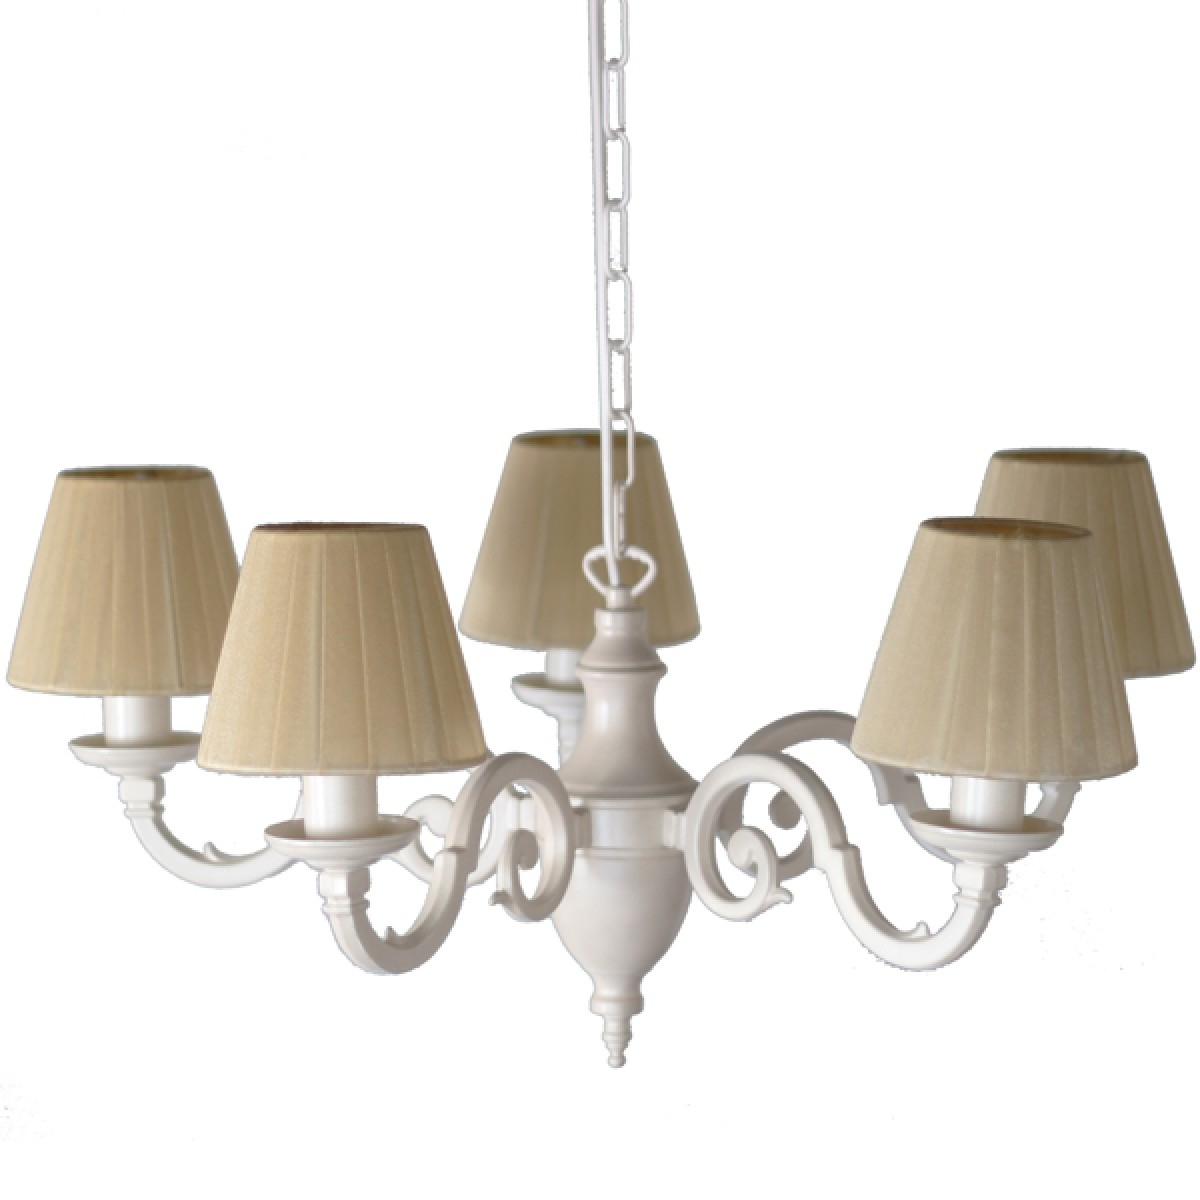 Bedroom Light Fitting Chandelier Pertaining To Cream Chandelier (Image 4 of 15)